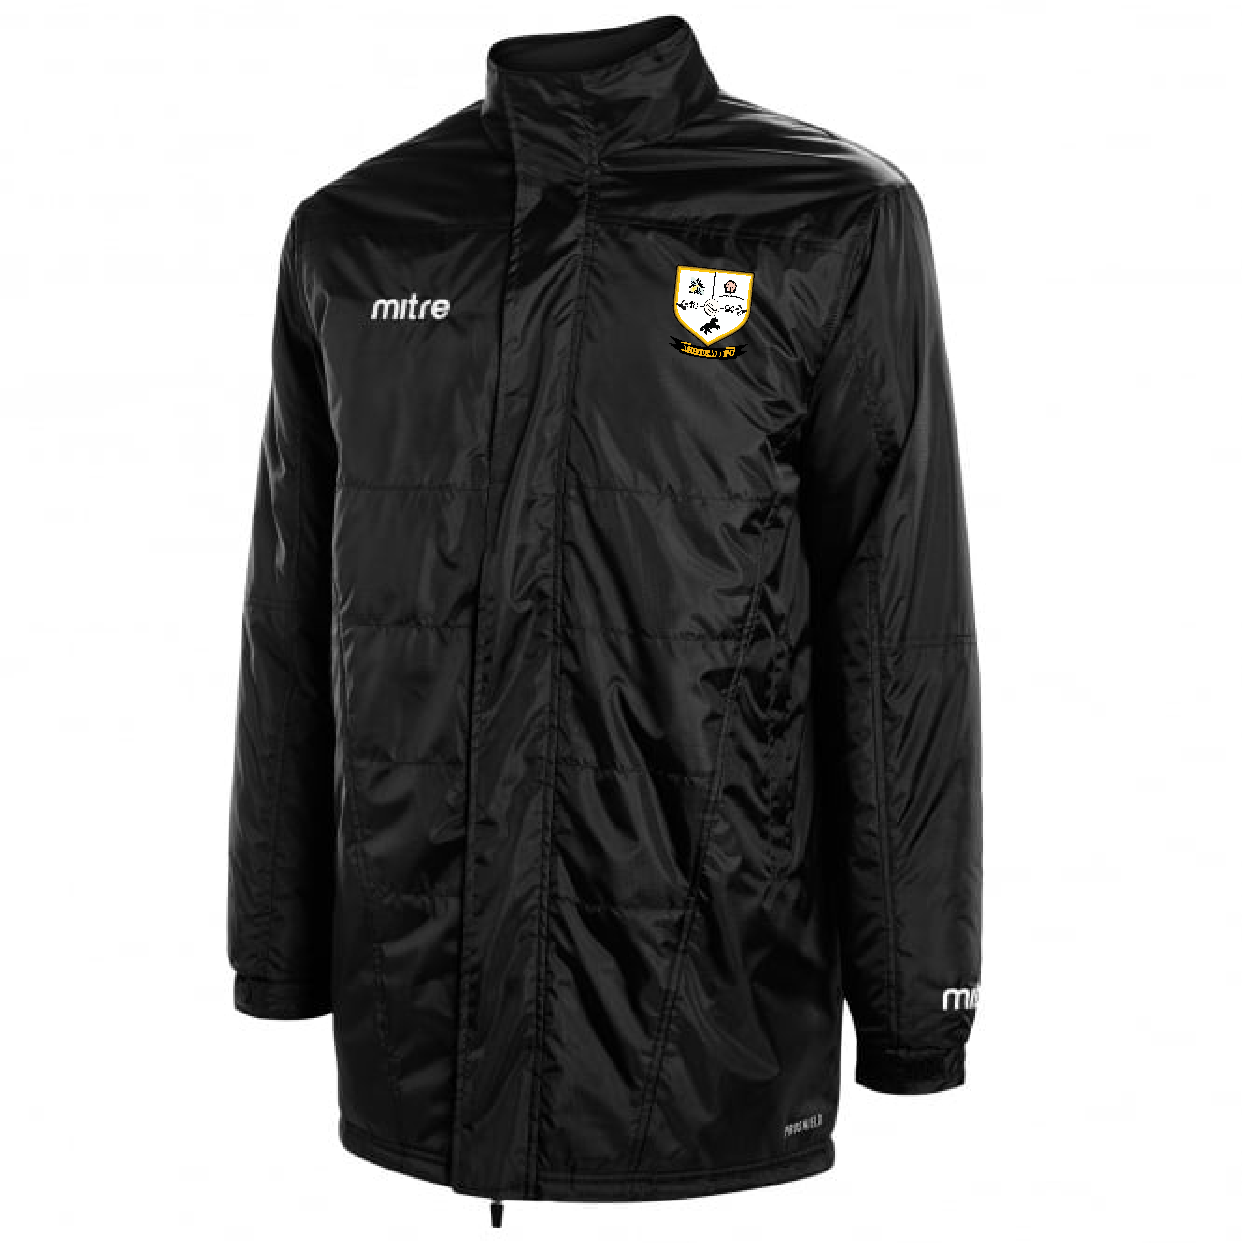 Ashtead FC Manager Bench jacket